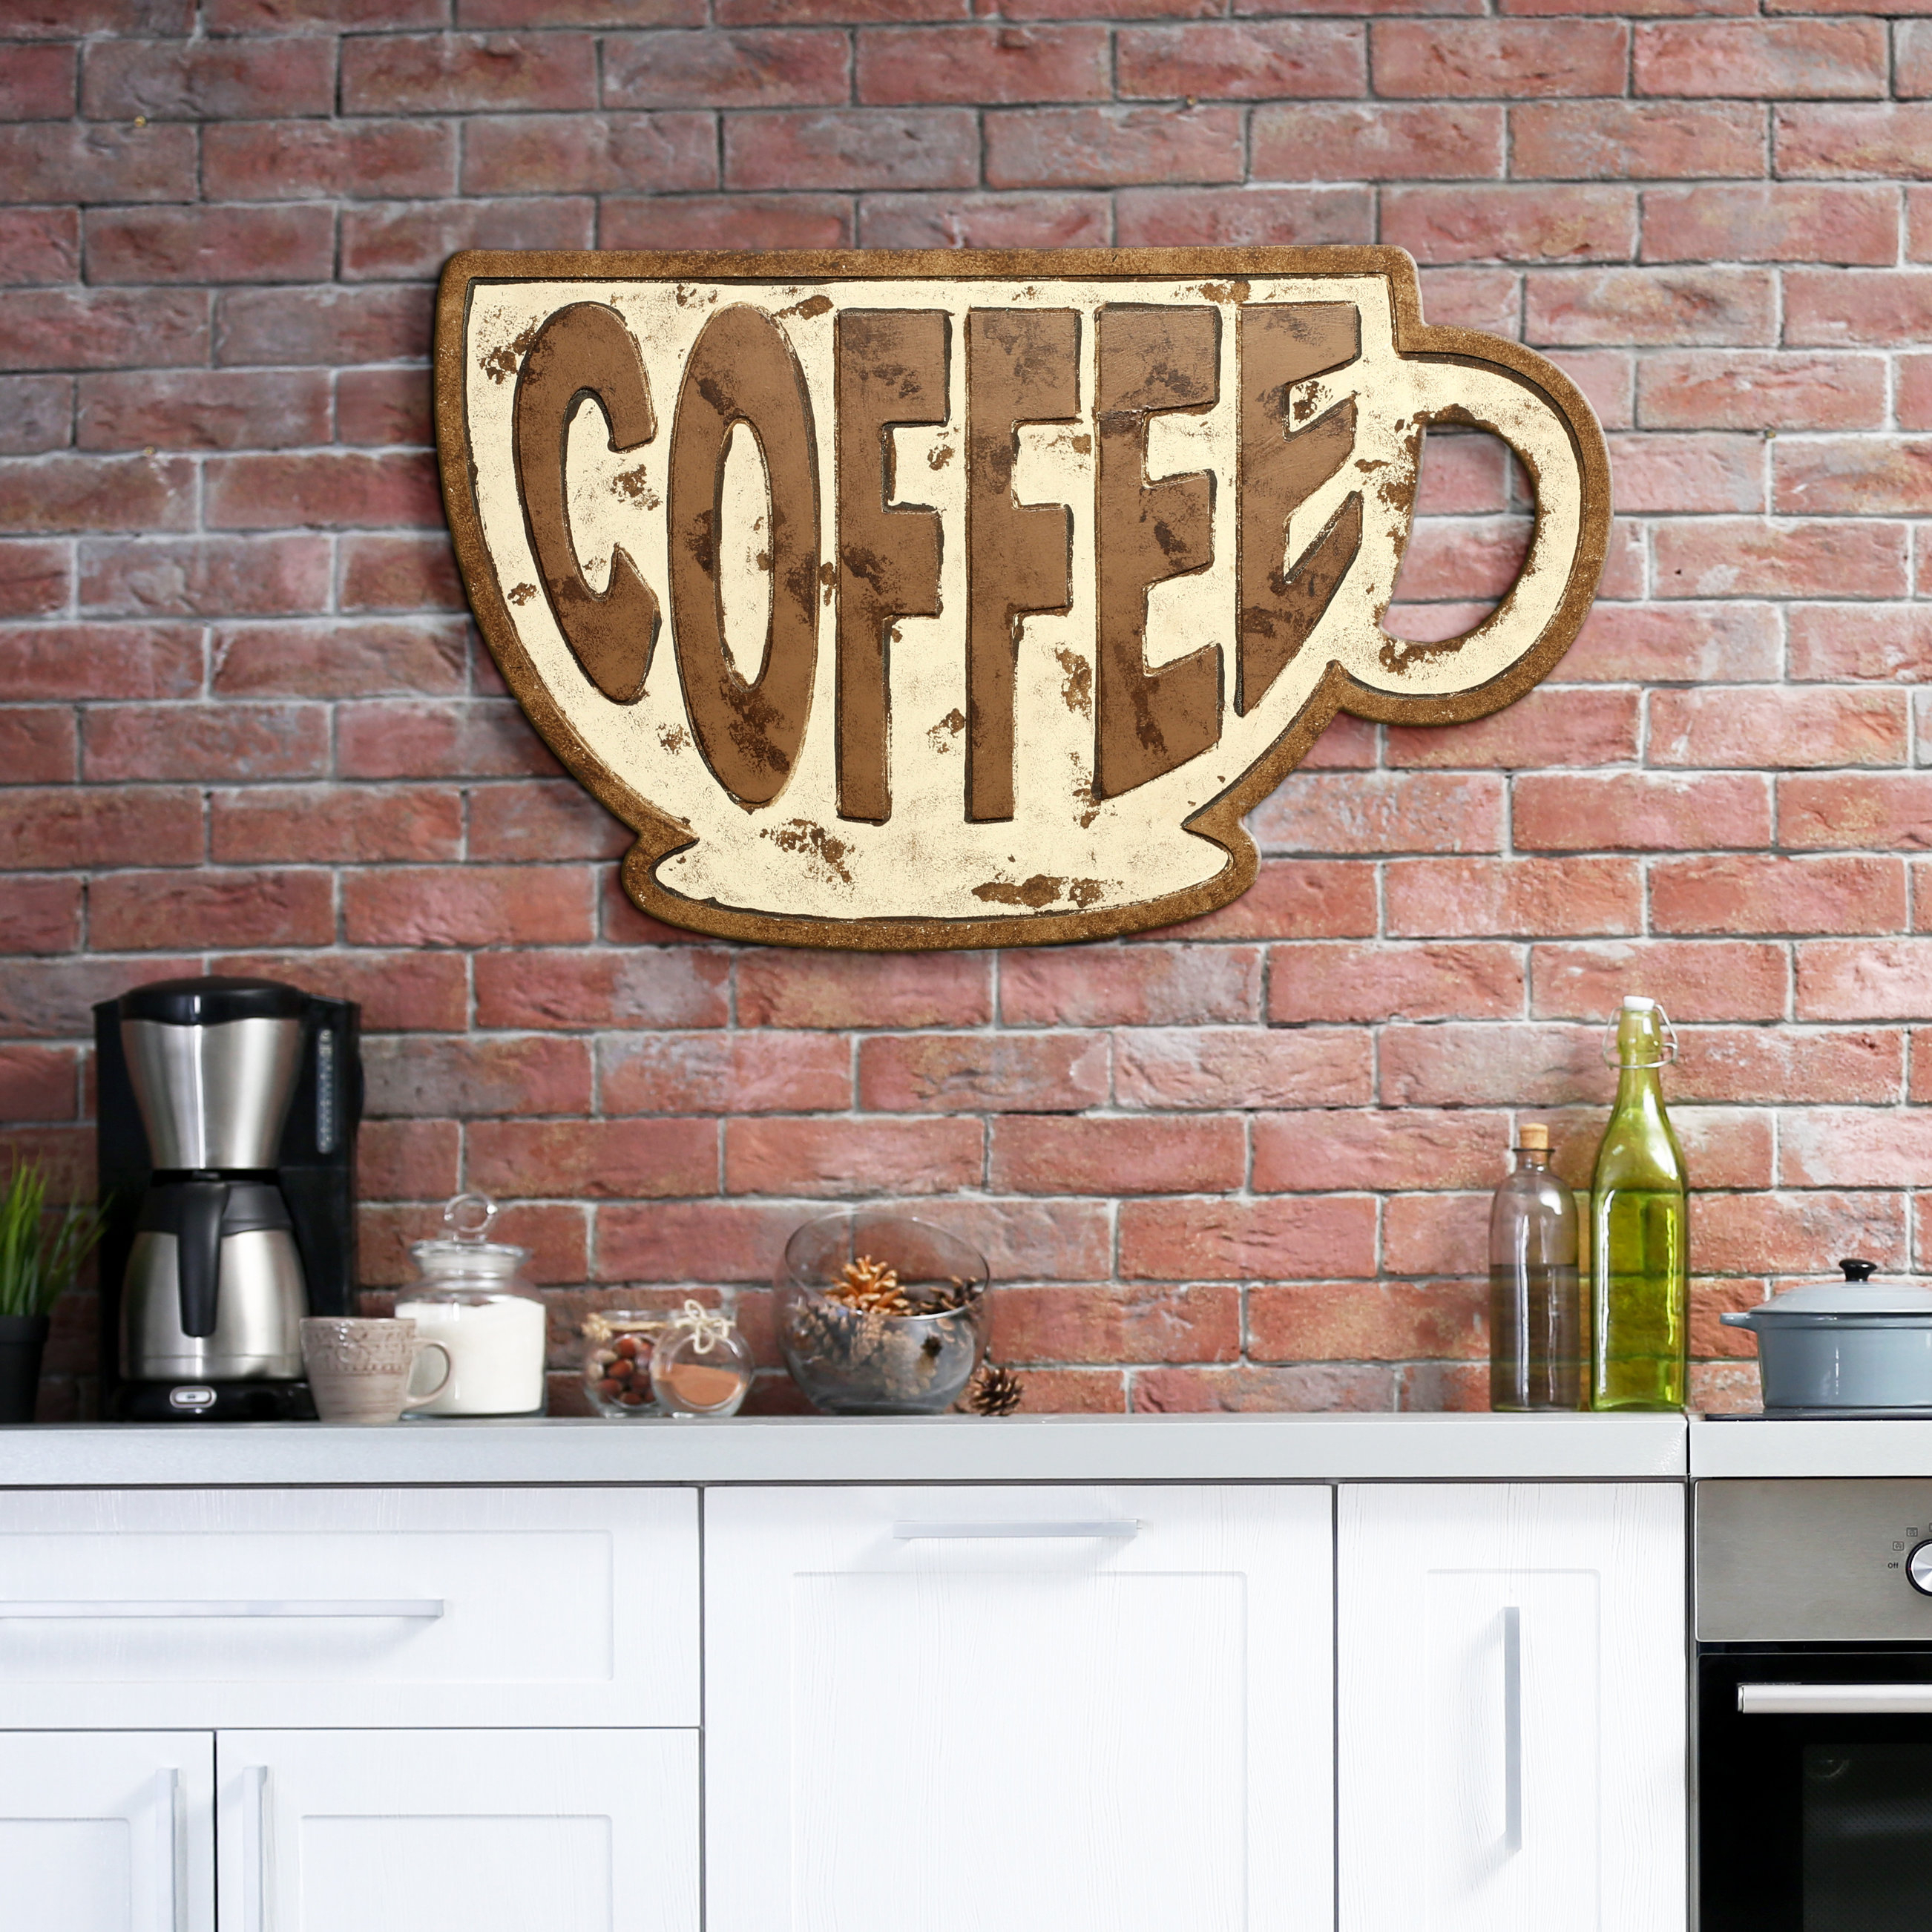 Winston Porter Coffee Mug Sign Wall Décor | Wayfair pertaining to Coffee Sign With Rebar Wall Decor (Image 30 of 30)